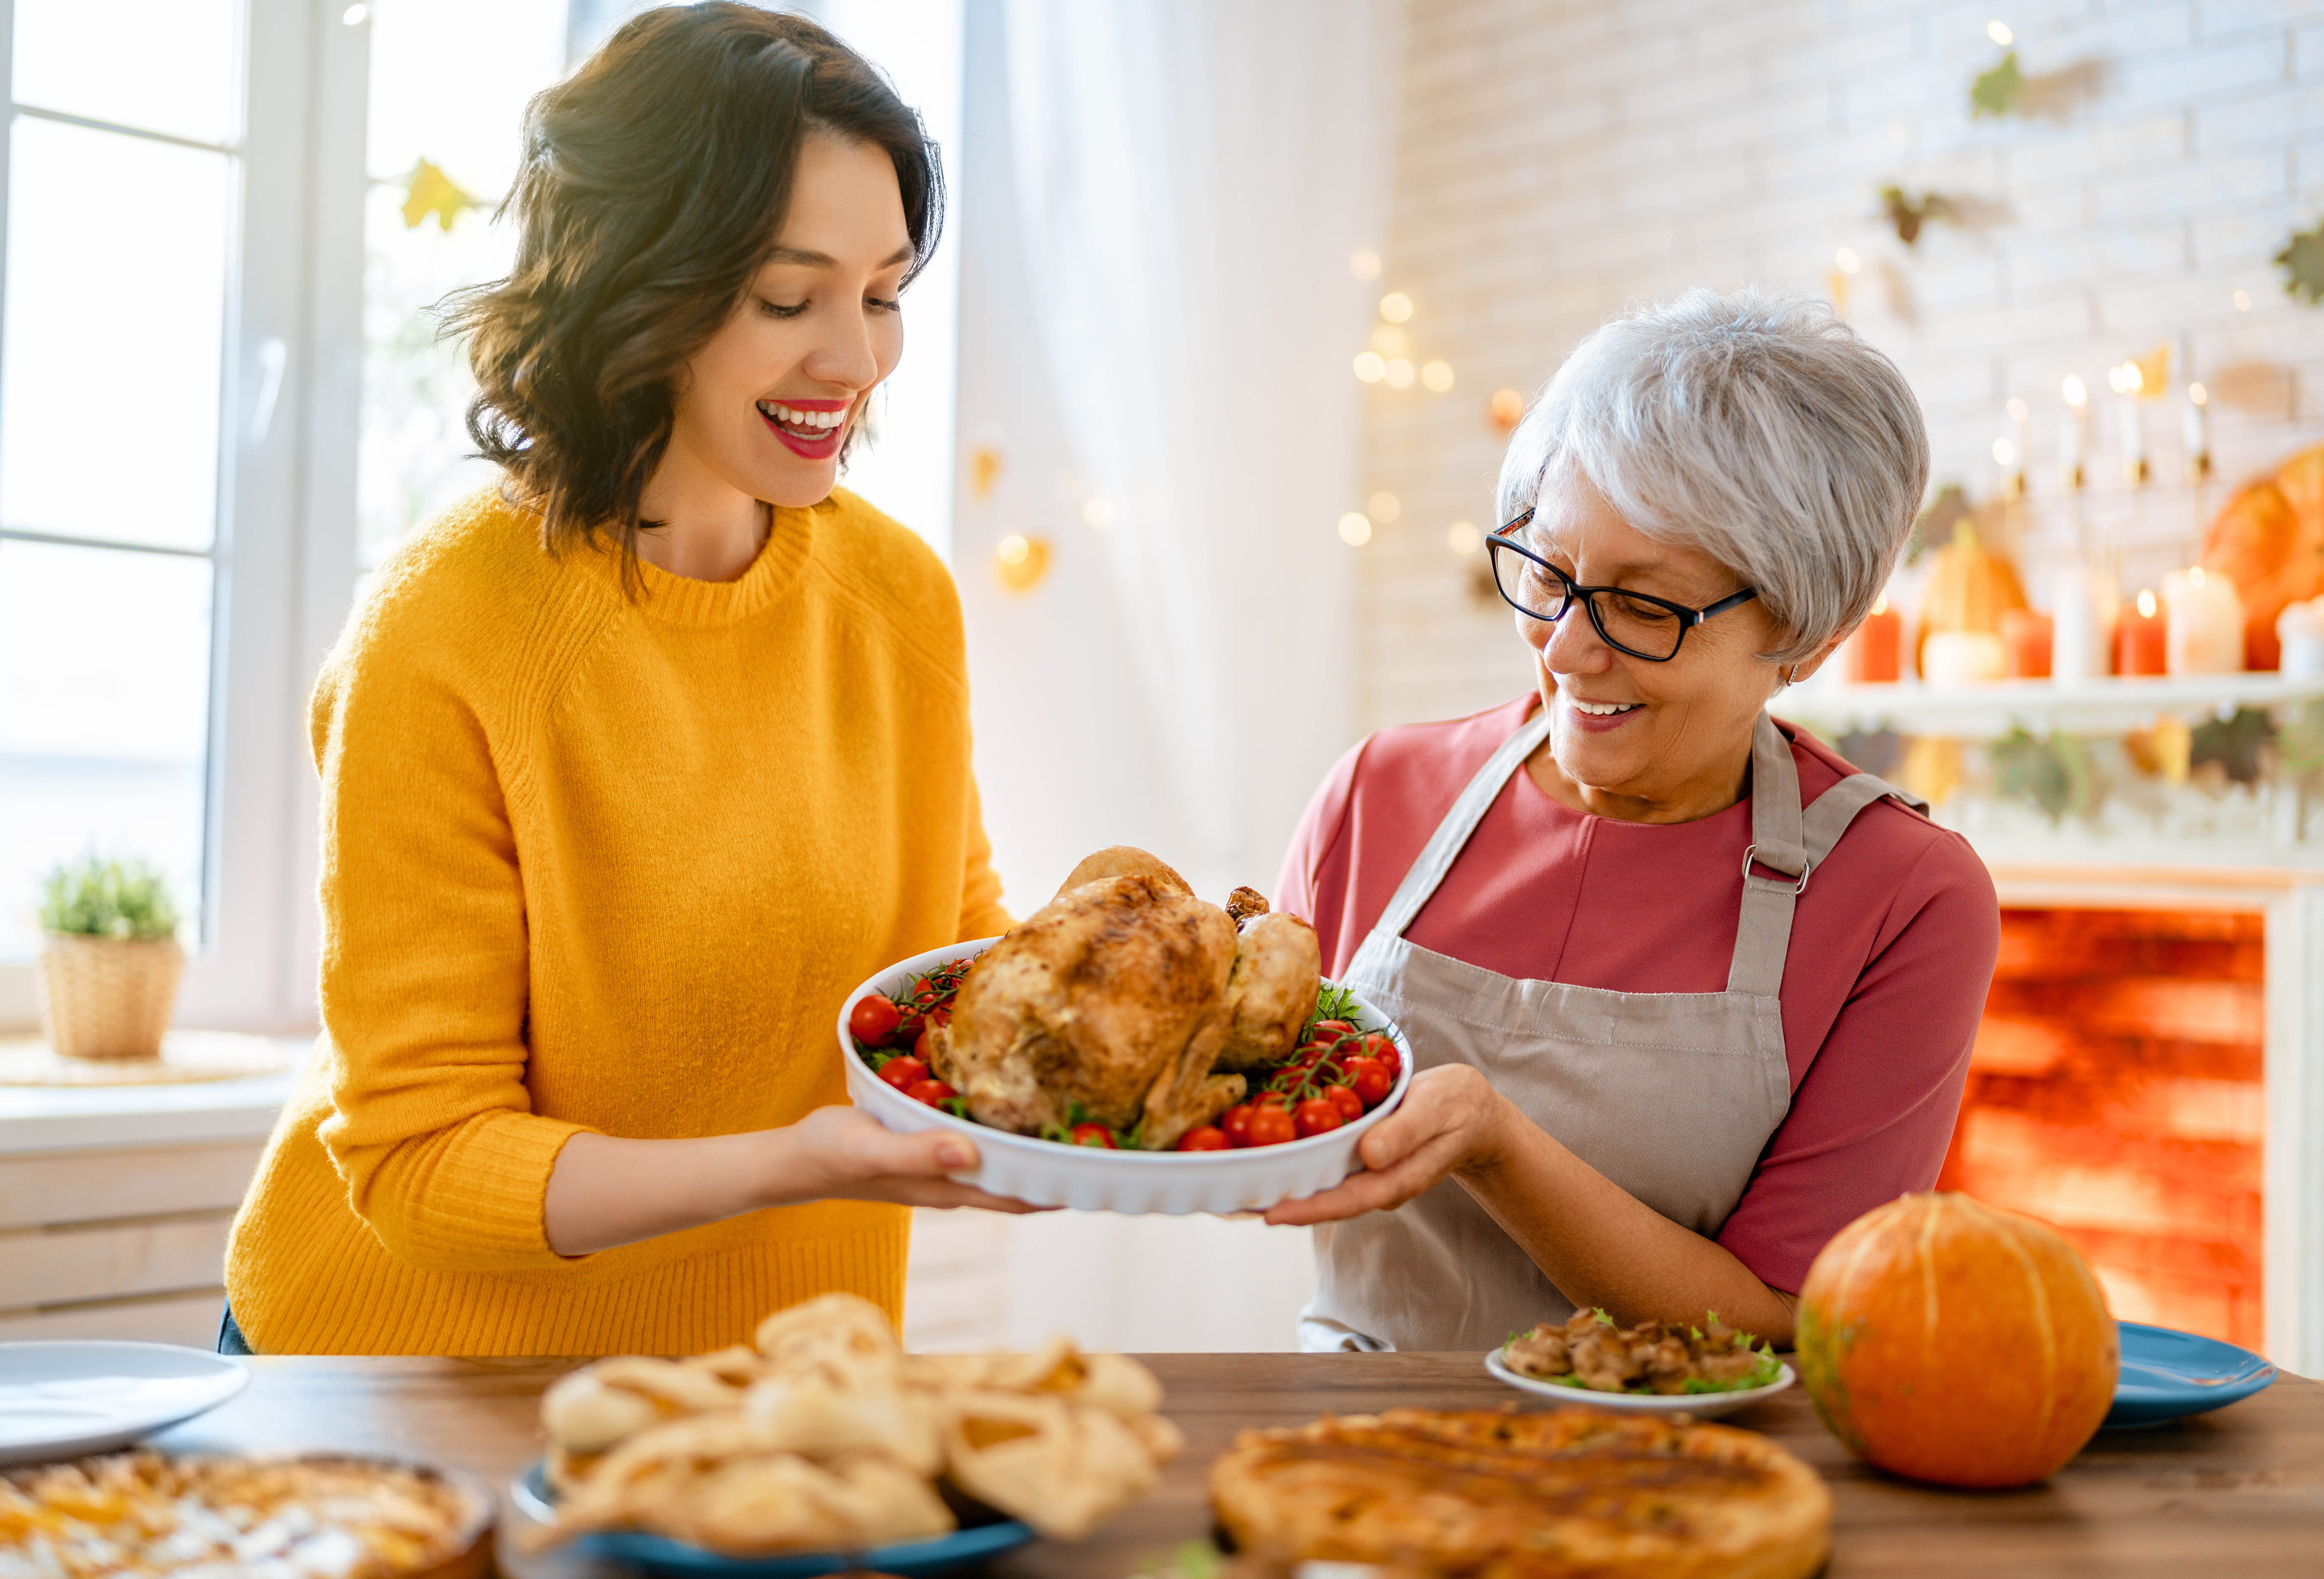 9 Tips to Staying Safe During Thanksgiving This Year